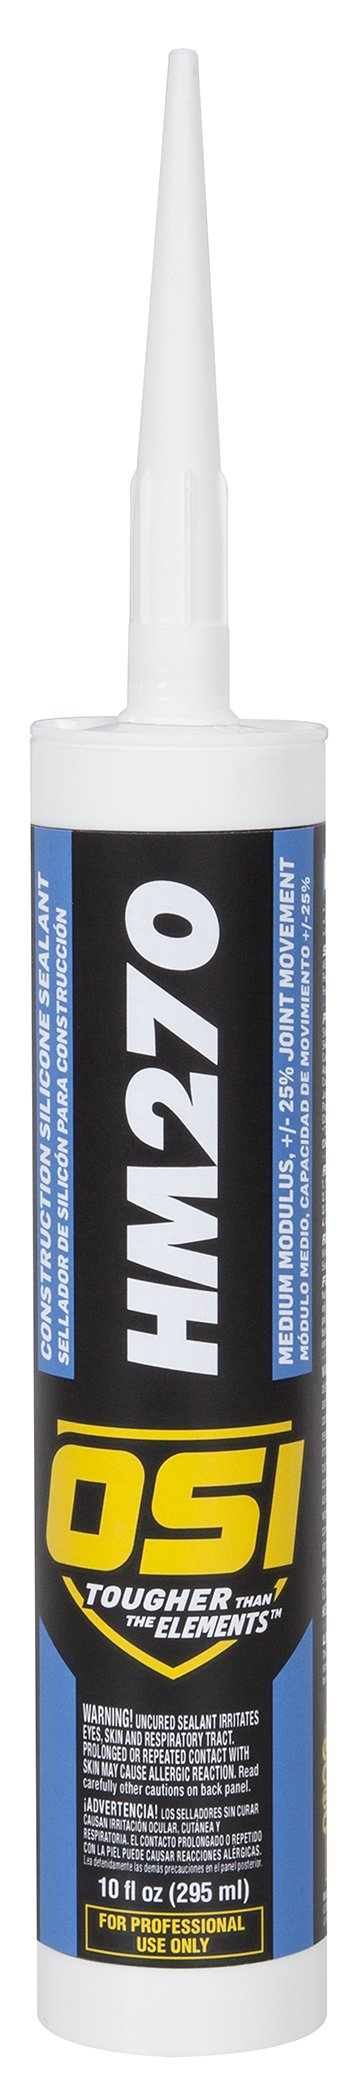 OSI HM270 White Silicone Construction Sealant 10-Fluid Ounce Cartridge (1493960) by OSI